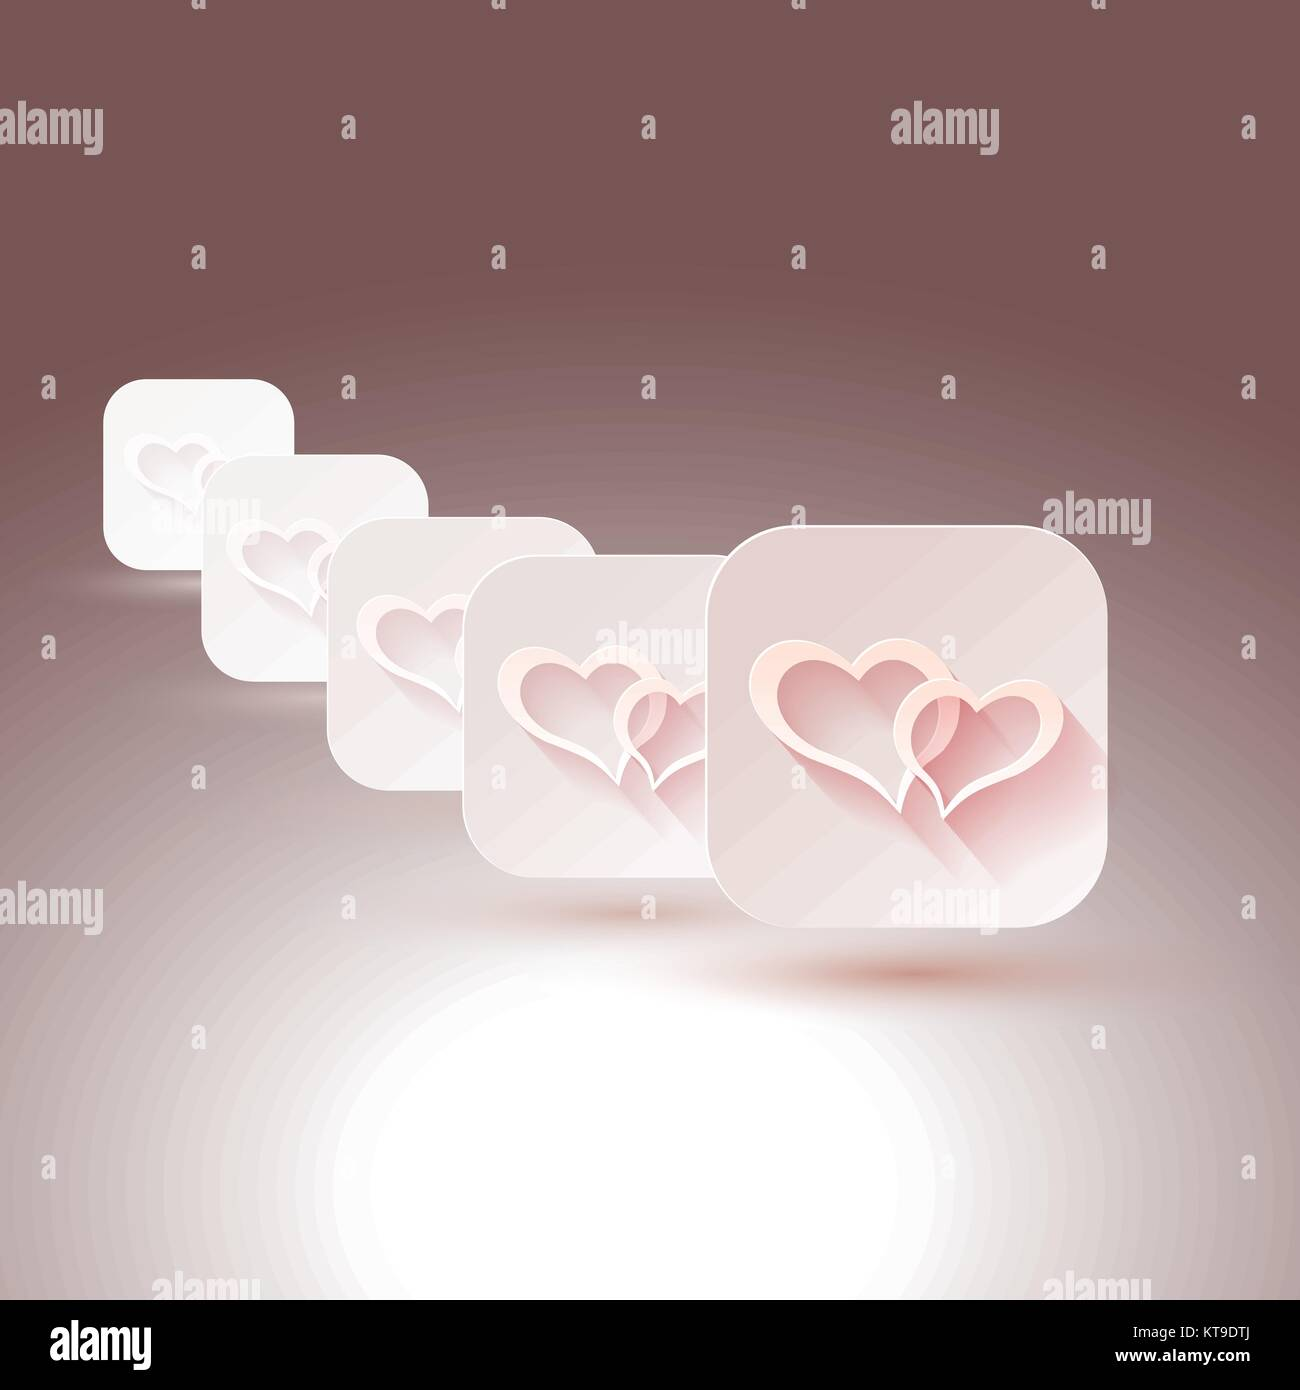 hearts with shadows for designs of wedding invitations stock vector